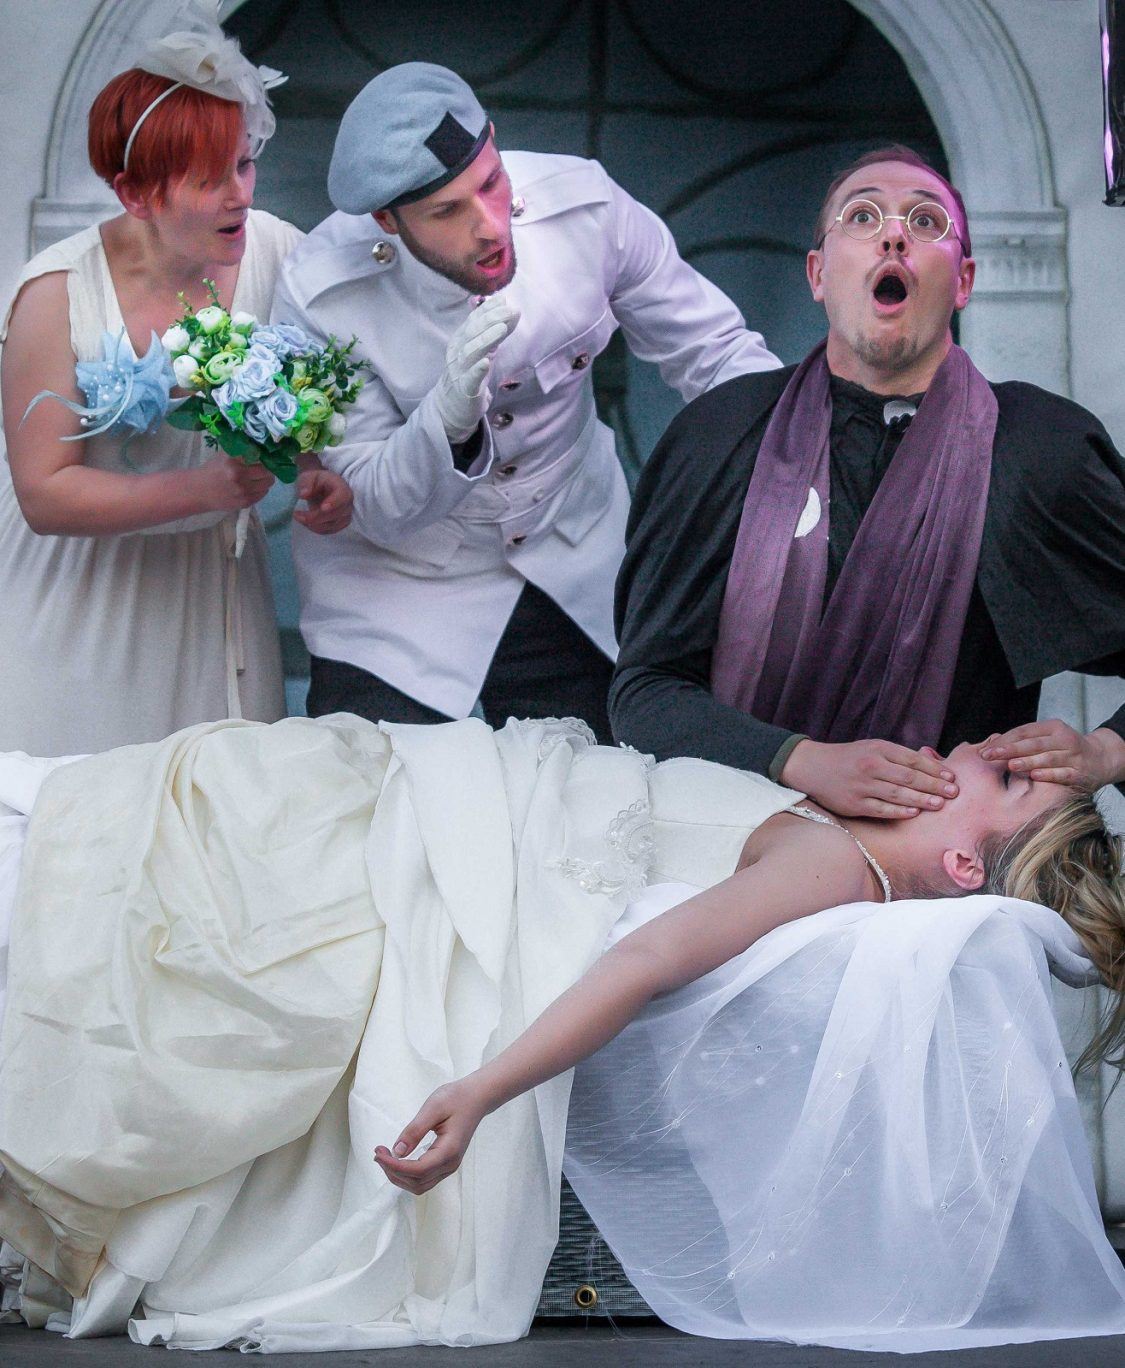 Watch Online: Oddsocks' Much Ado About Nothing